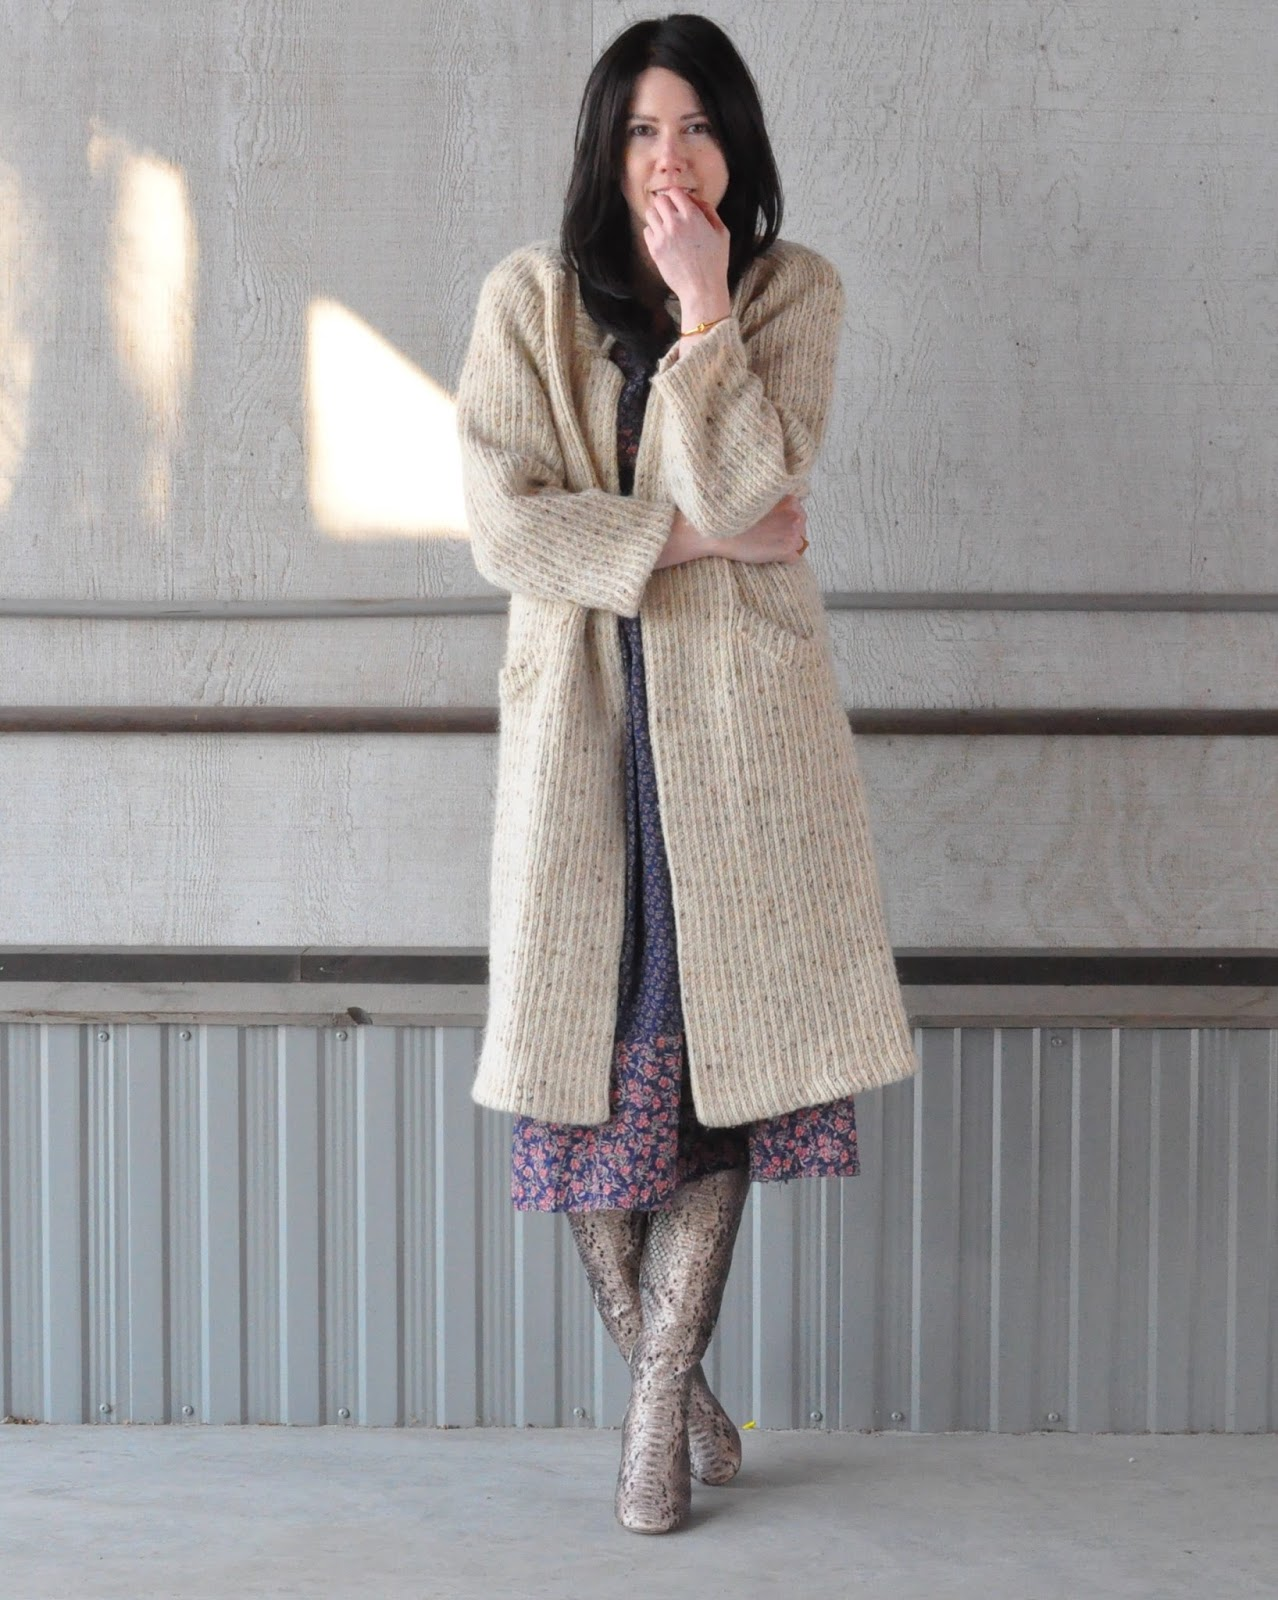 Alaskan fashion blogger outfit inspiration thrifted vintage